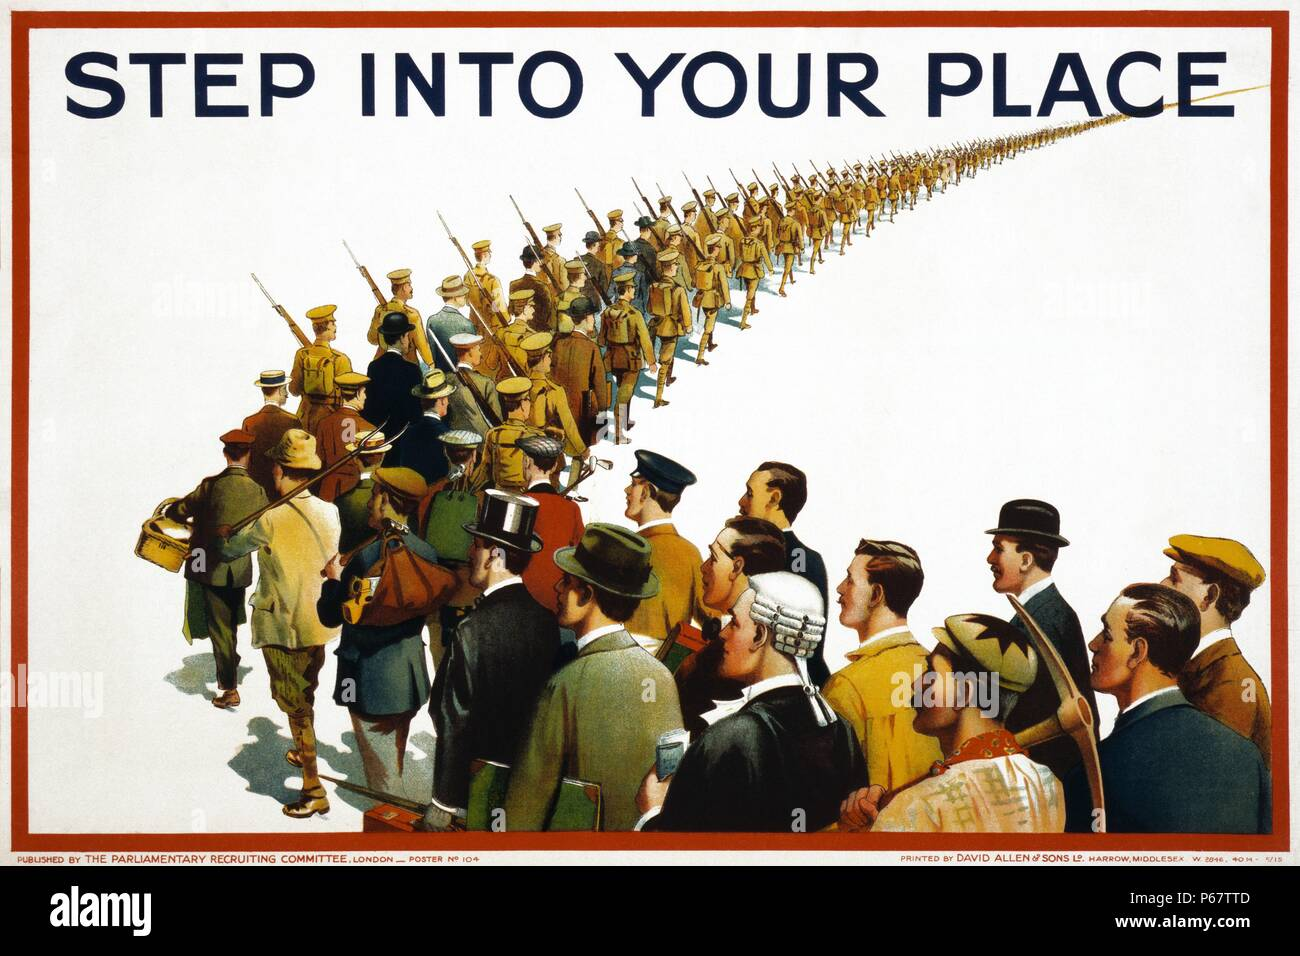 English propaganda poster from the First World War showing a column of soldiers and civilians marching to war. Text reads 'Step into your place'. Stock Photo